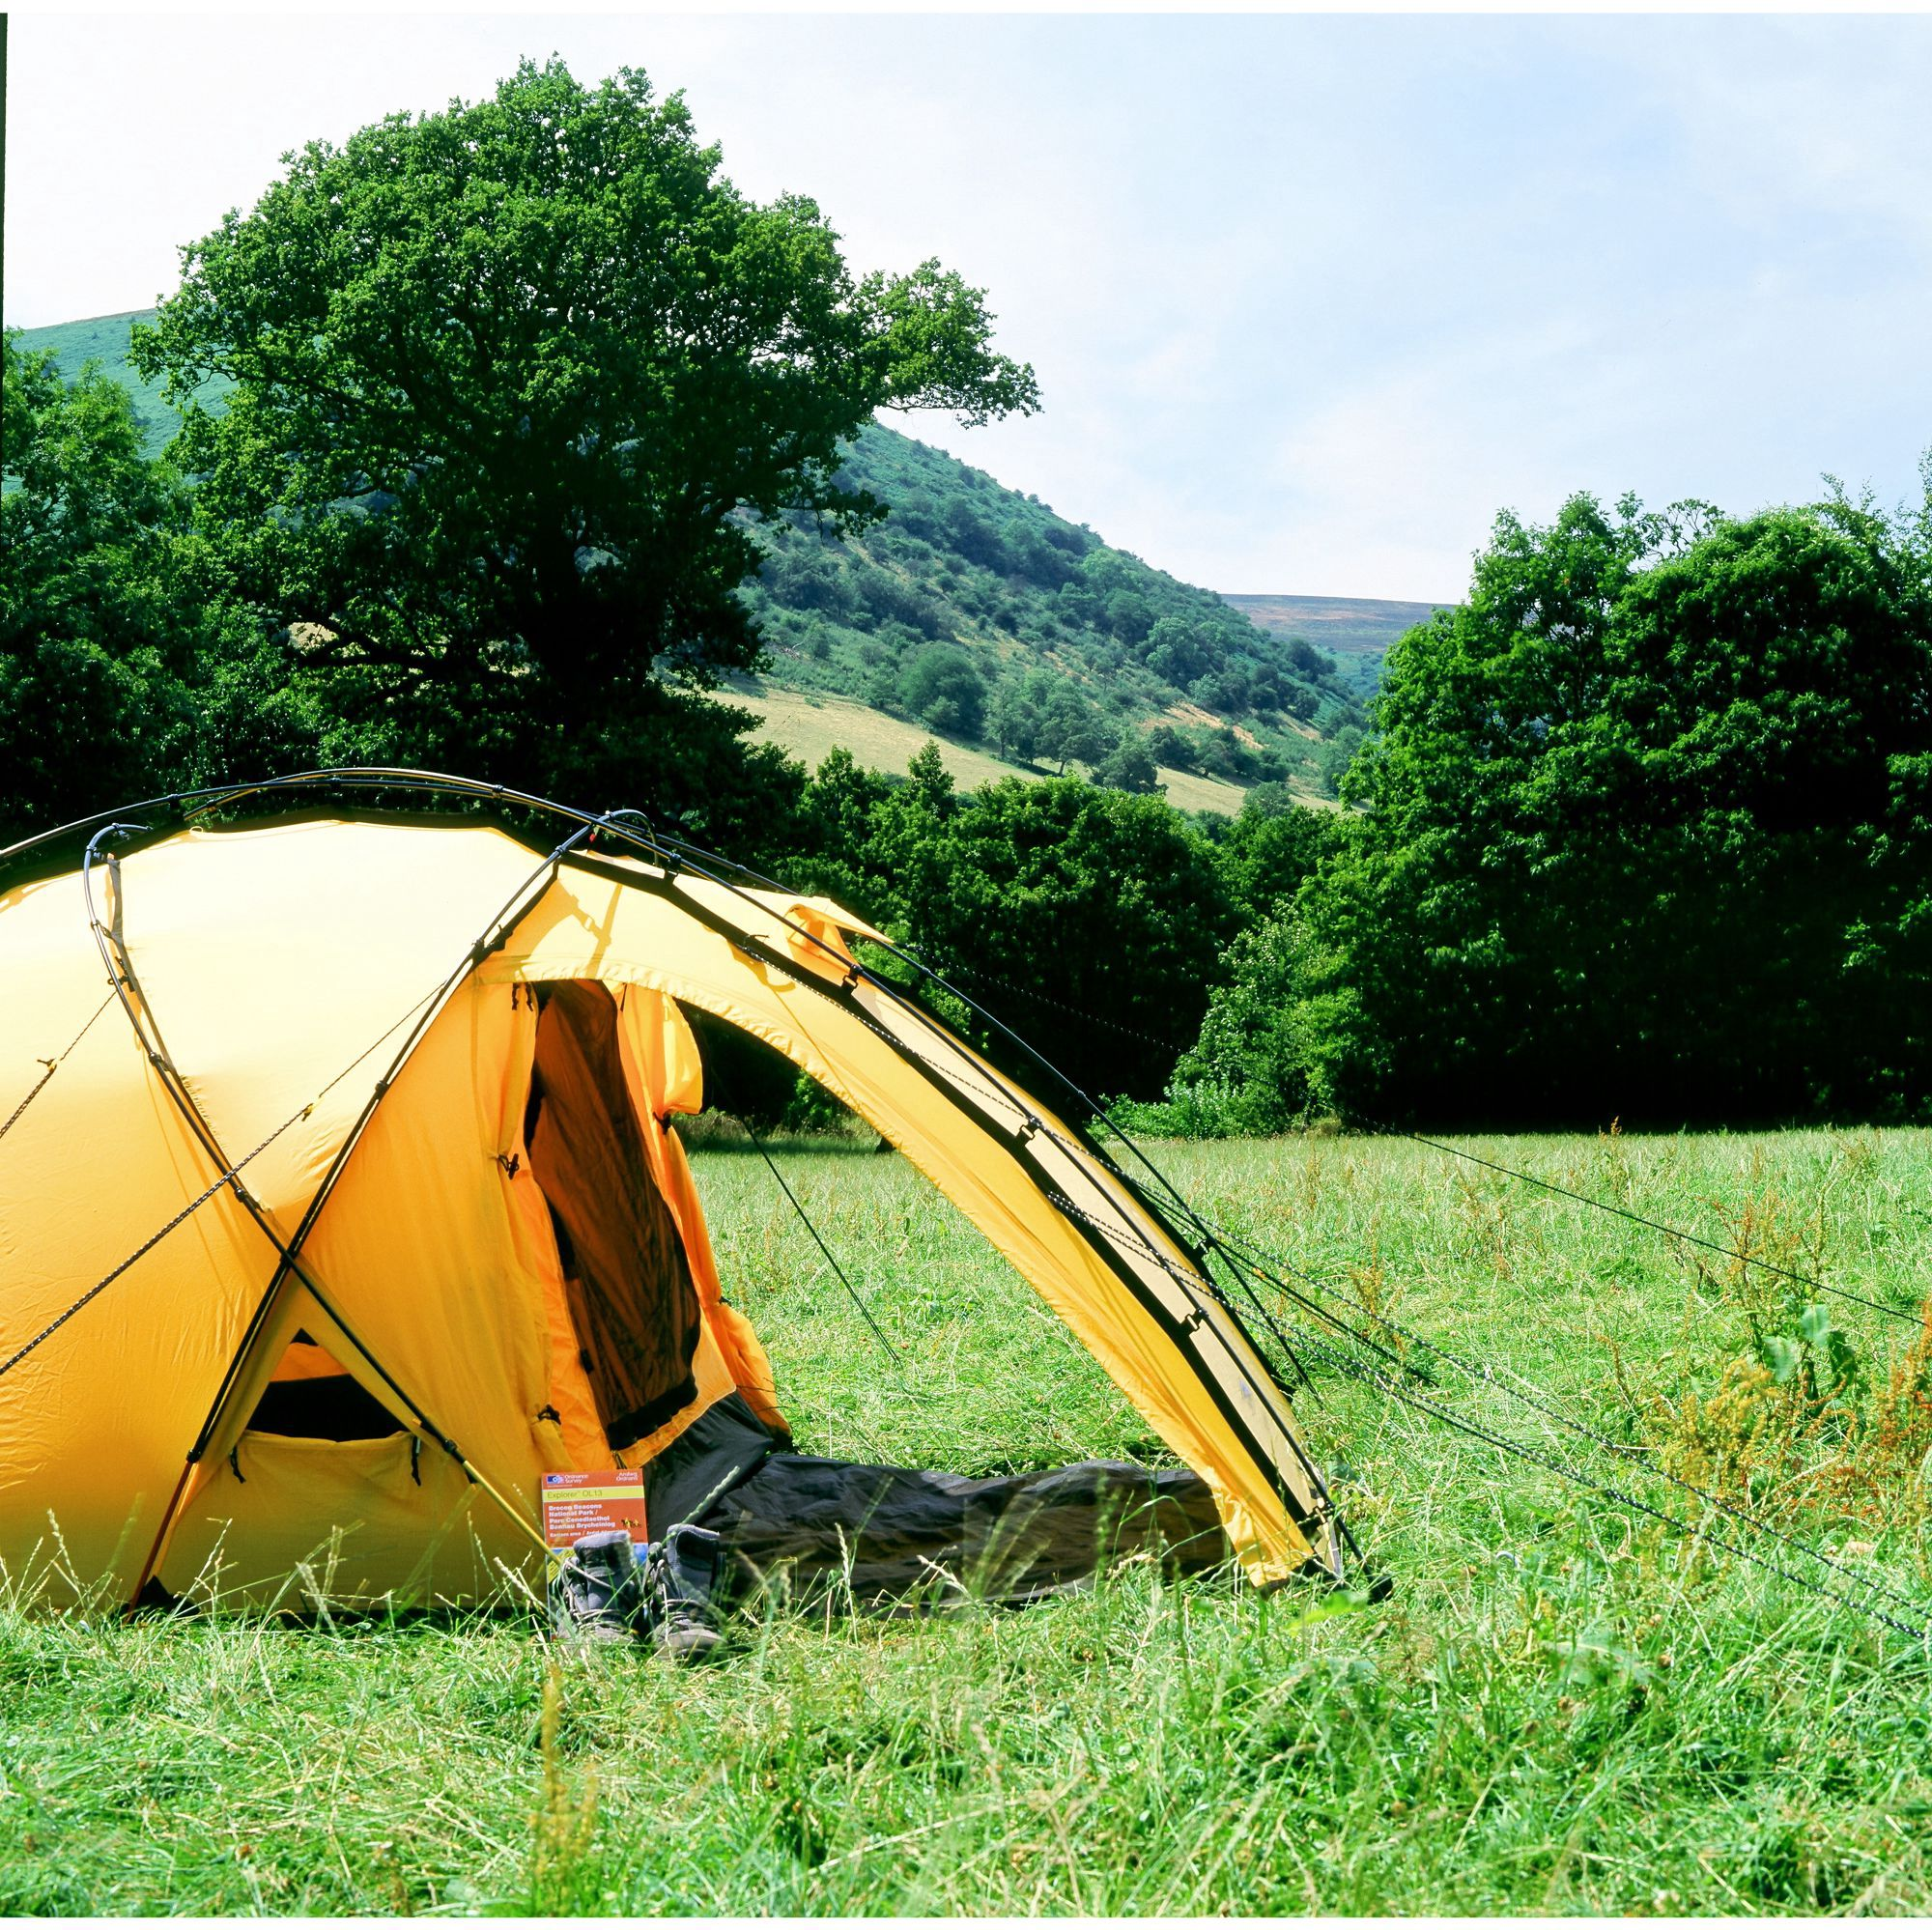 Campsites in Monmouthshire